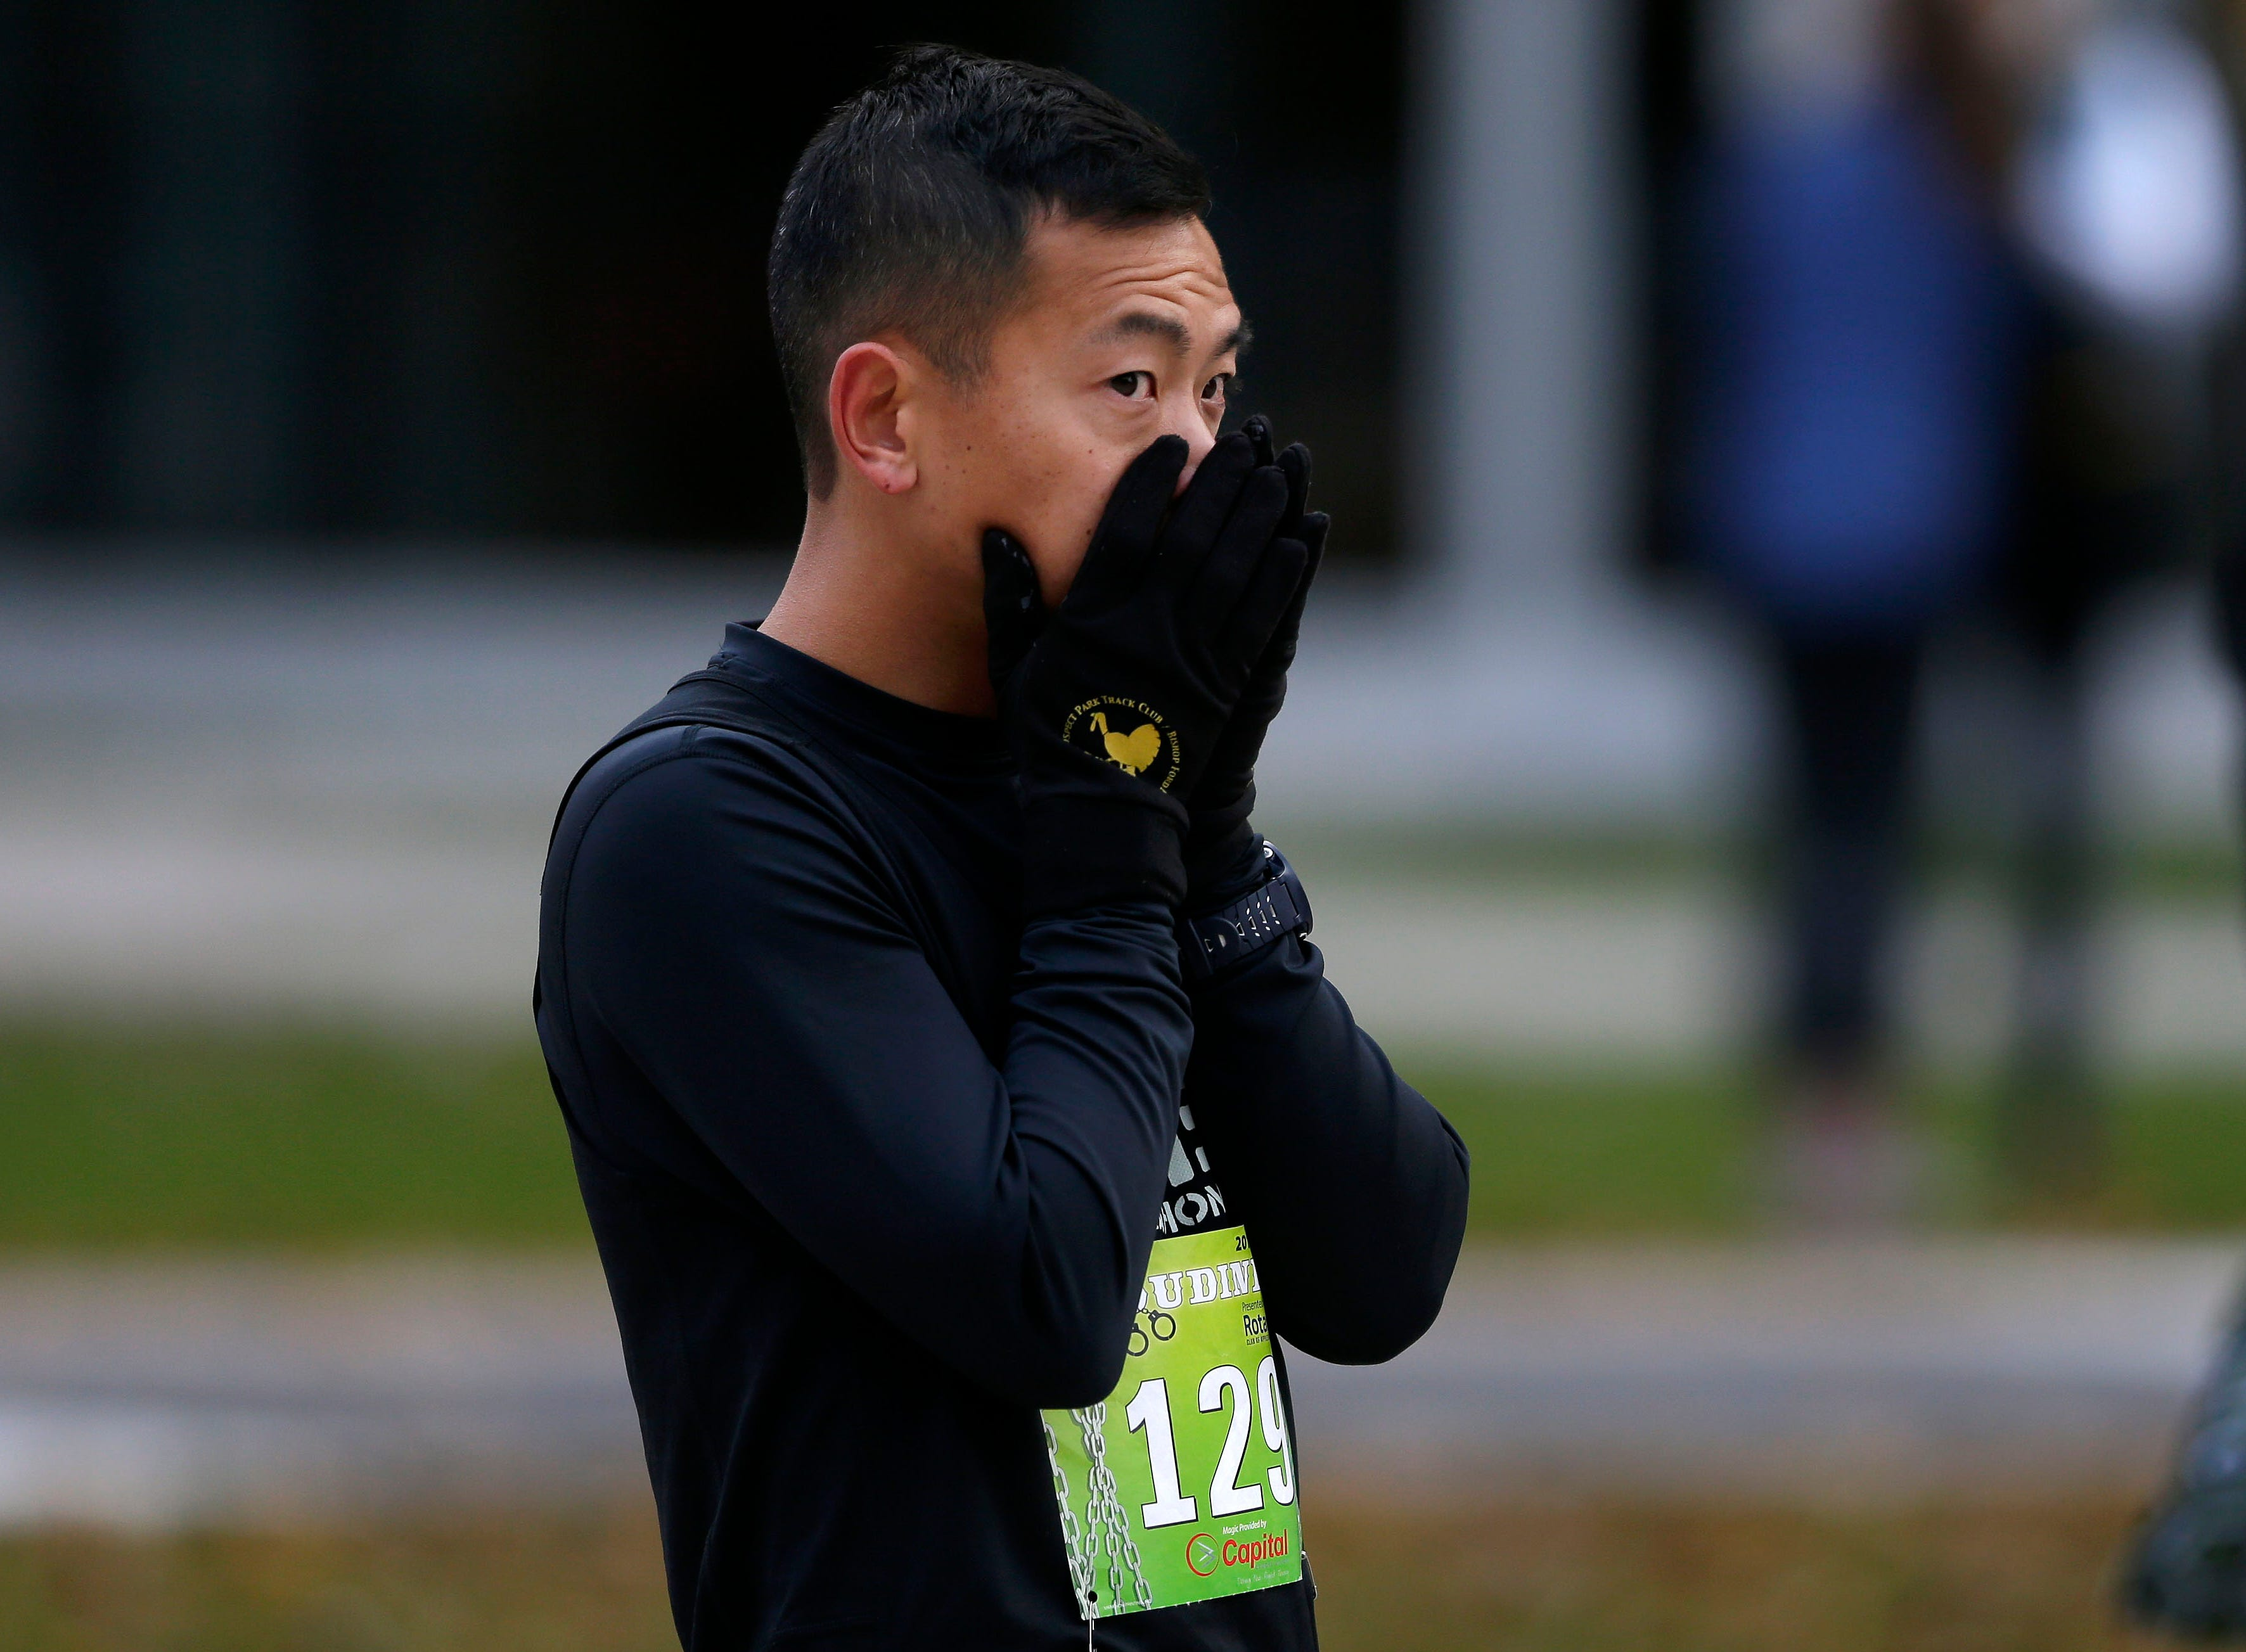 Philip Chiu stays warm before the start of the 4th annual Appleton Houdini 10K Saturday, November 3, 2018, in Appleton, Wis.